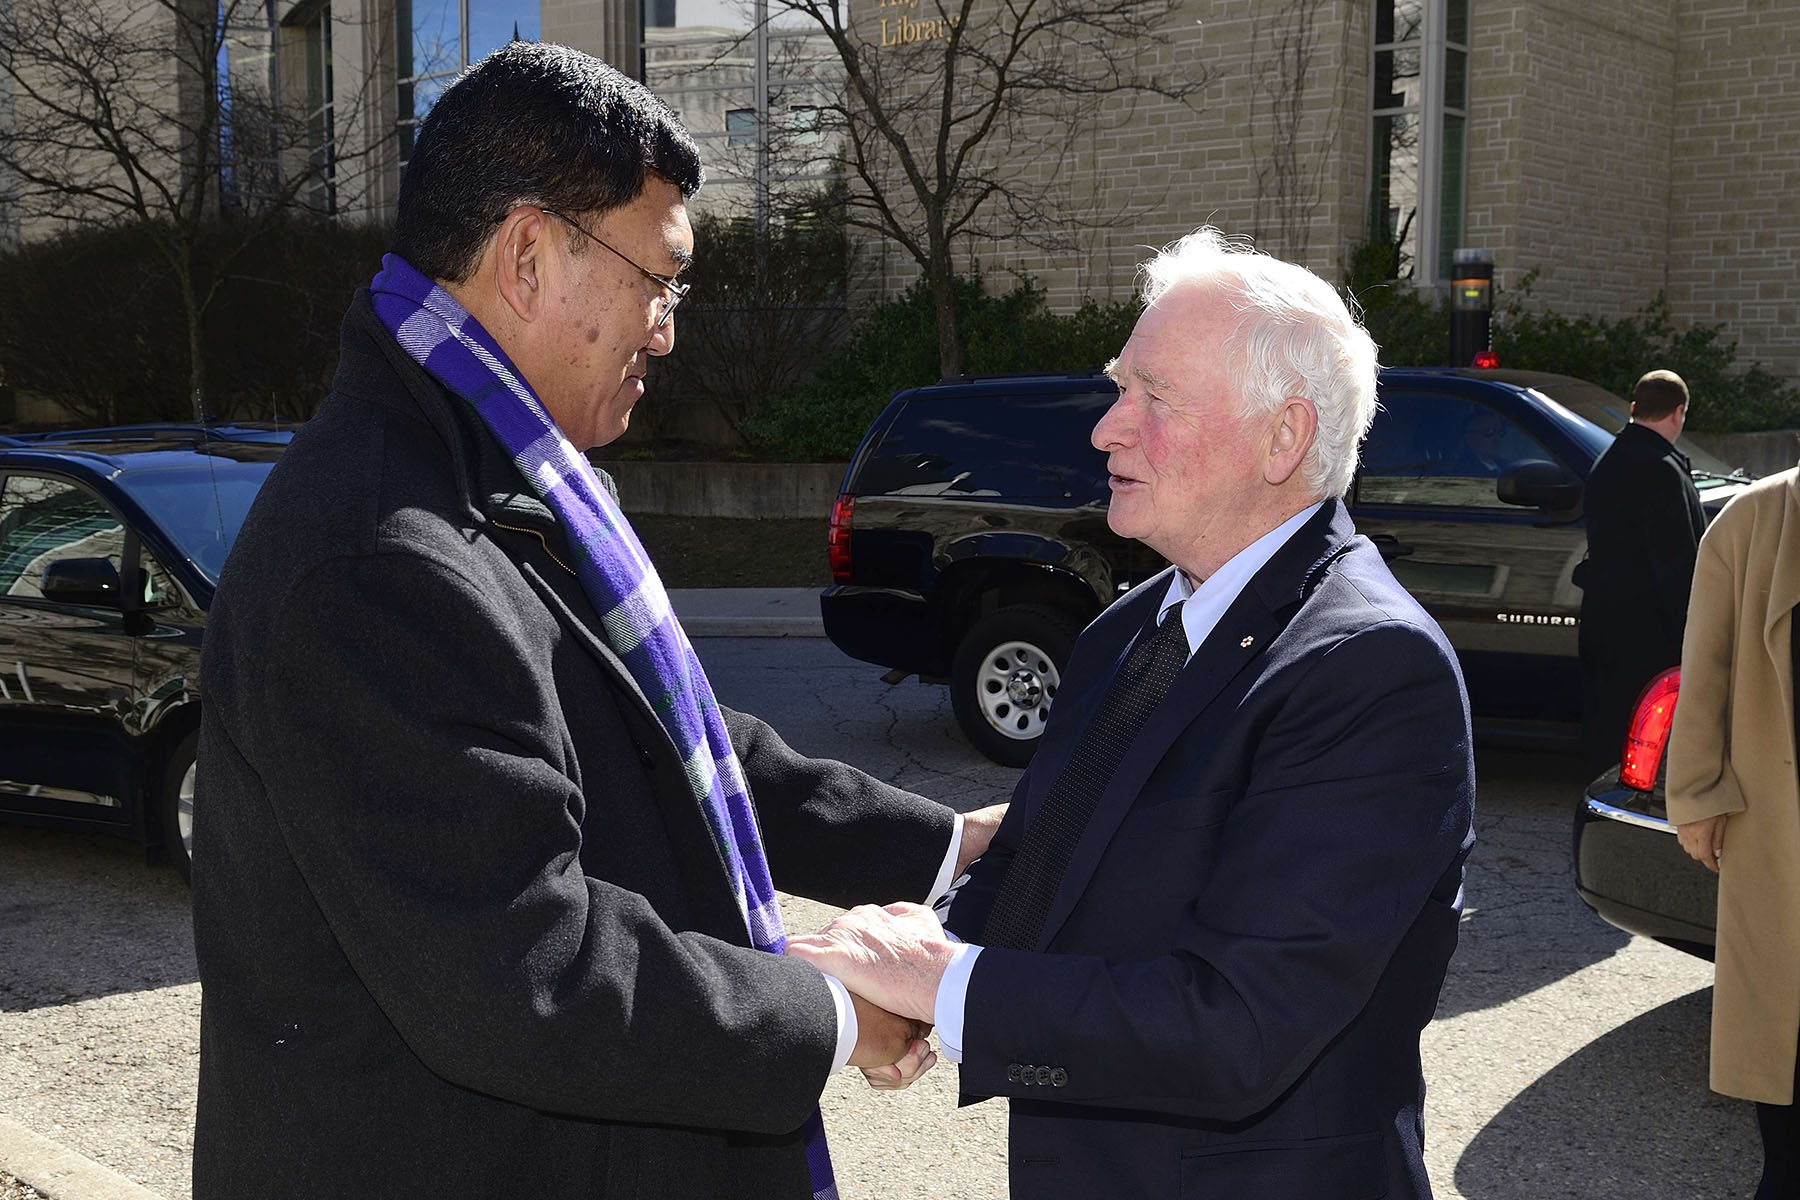 Son Excellence le très honorable David Johnston a commencé sa première journée à London en visitant le Robarts Research Institute de l'Université Western. M. Amit Chakma, recteur et vice-chancellier de l'Université Western Ontario, a acceuilli son Excellence.